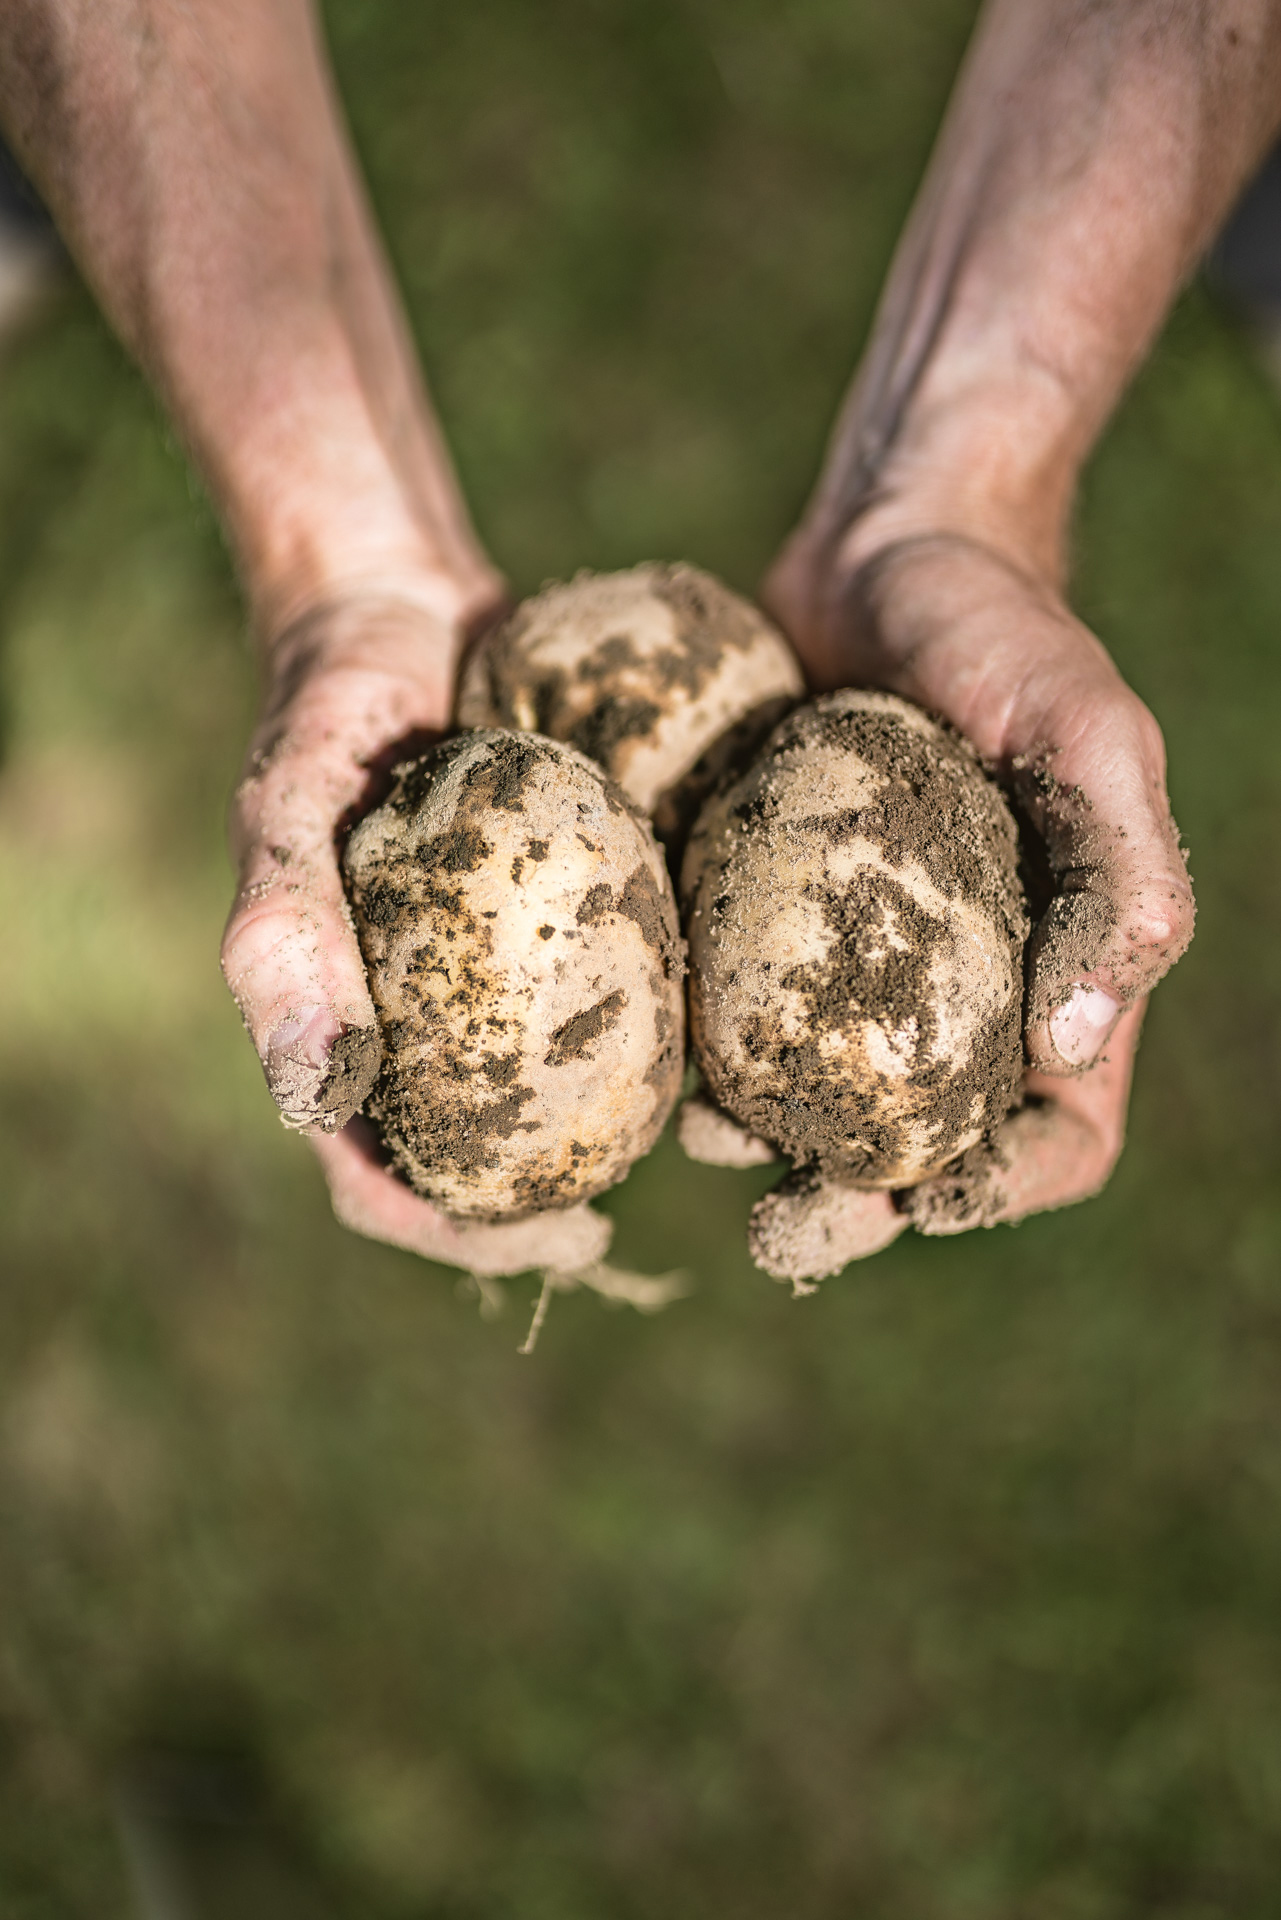 Hands hold organically grown Shelburne, Ontario Downey Potatoes.